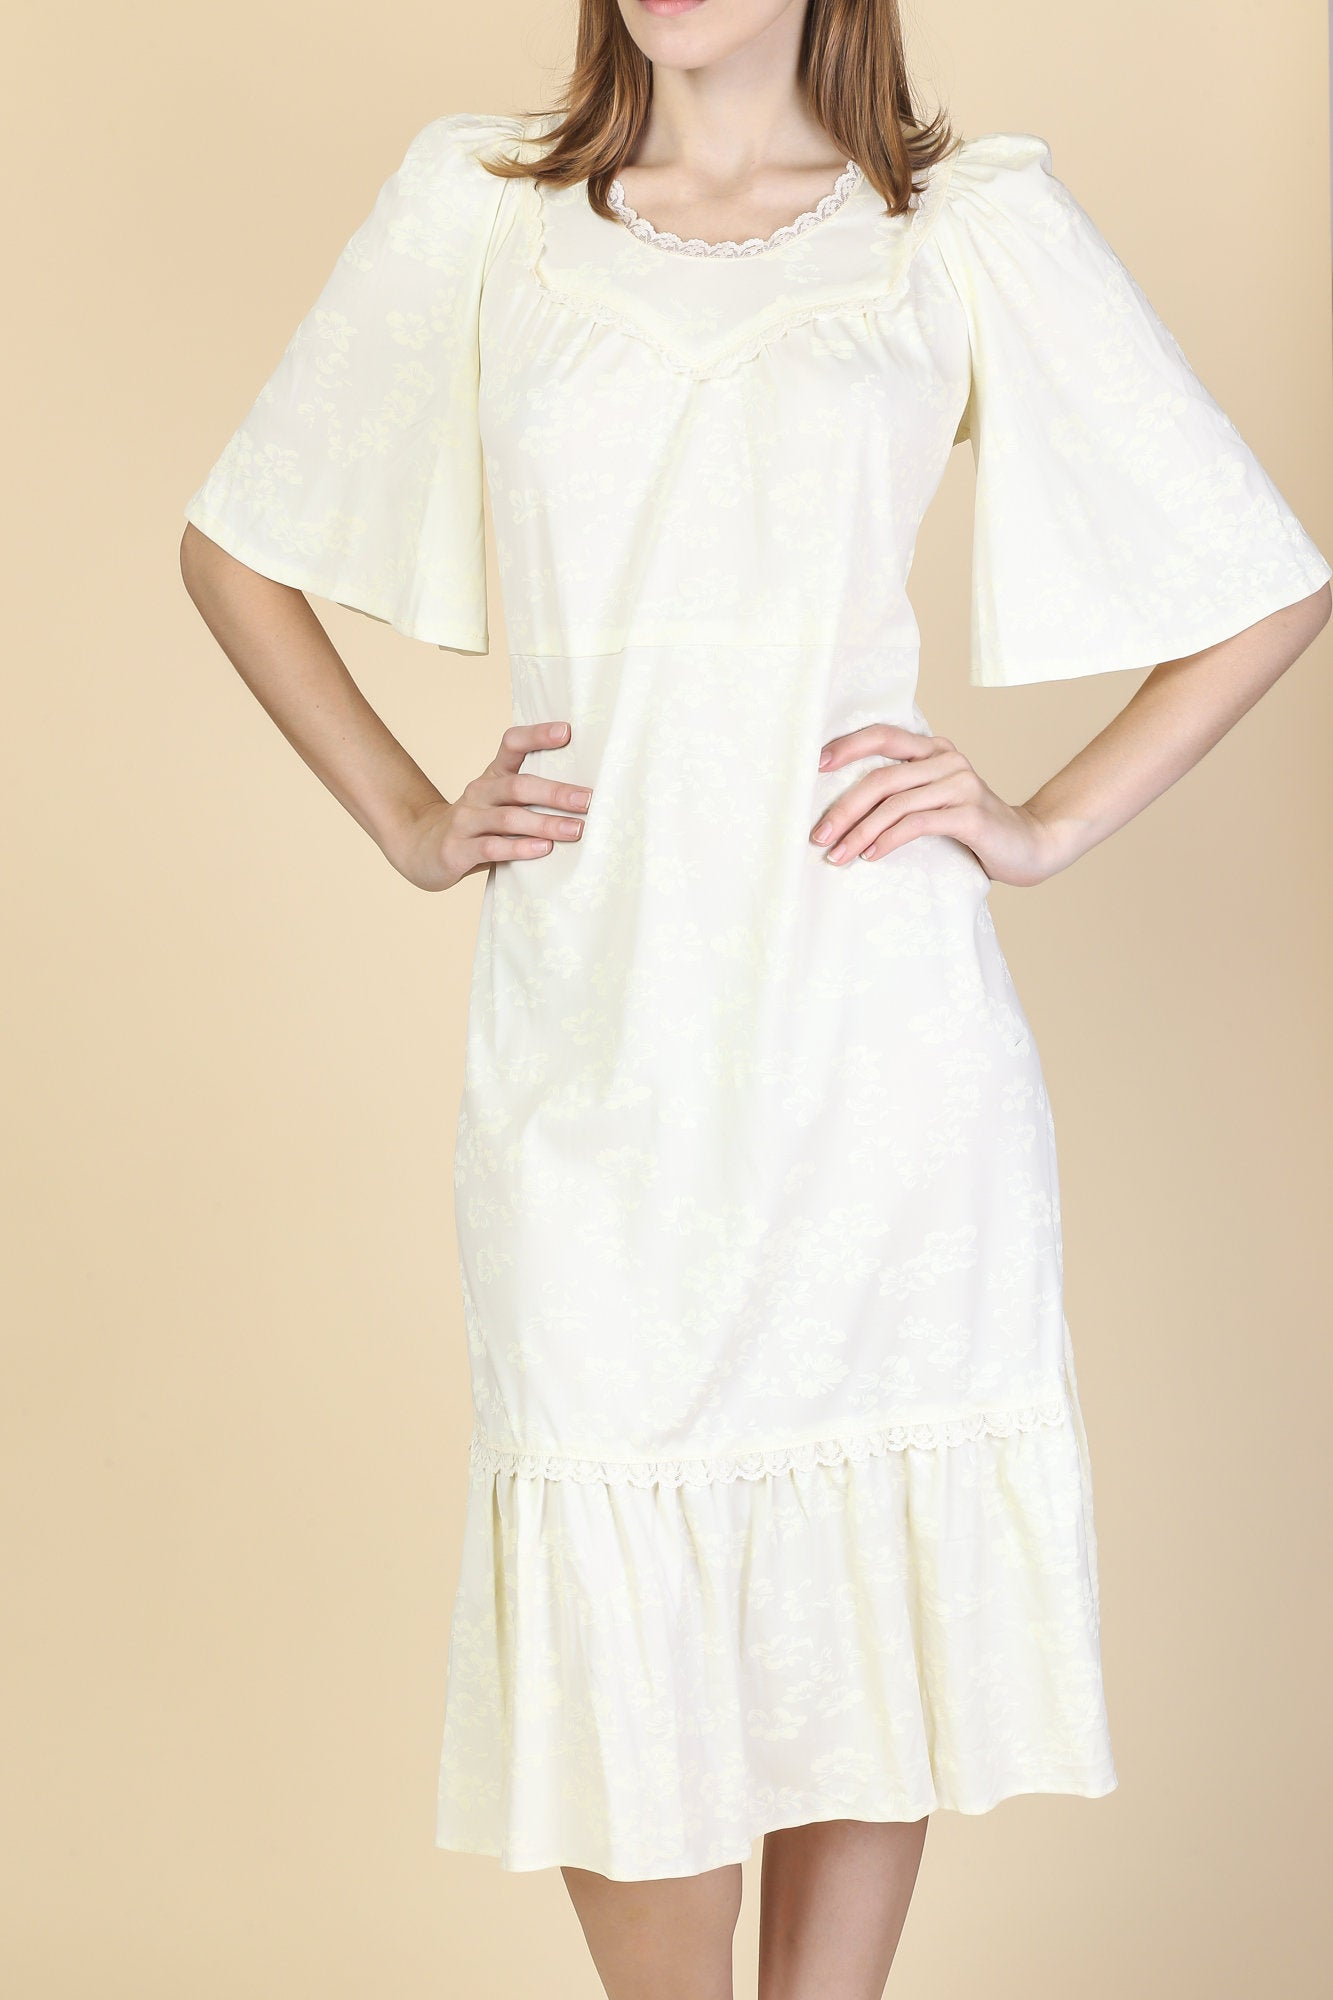 70s Boho Cream Flutter Sleeve Dress - Medium to Large